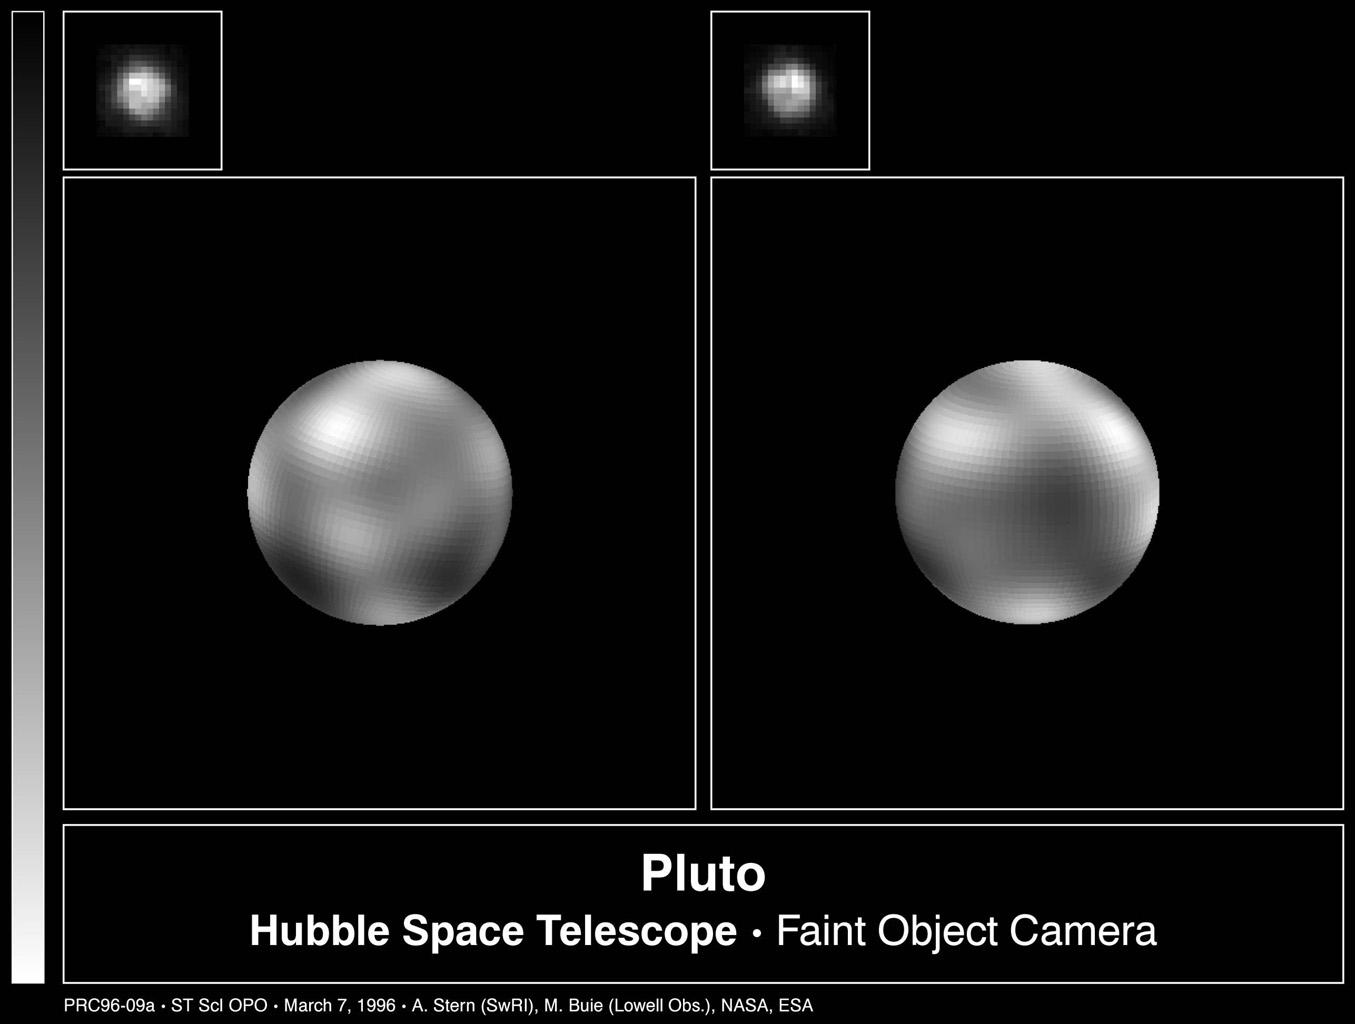 The never-before-seen surface of the distant planet Pluto is resolved in these NASA Hubble Space Telescope pictures, taken with the European Space Agency's Faint Object Camera (FOC) aboard Hubble.